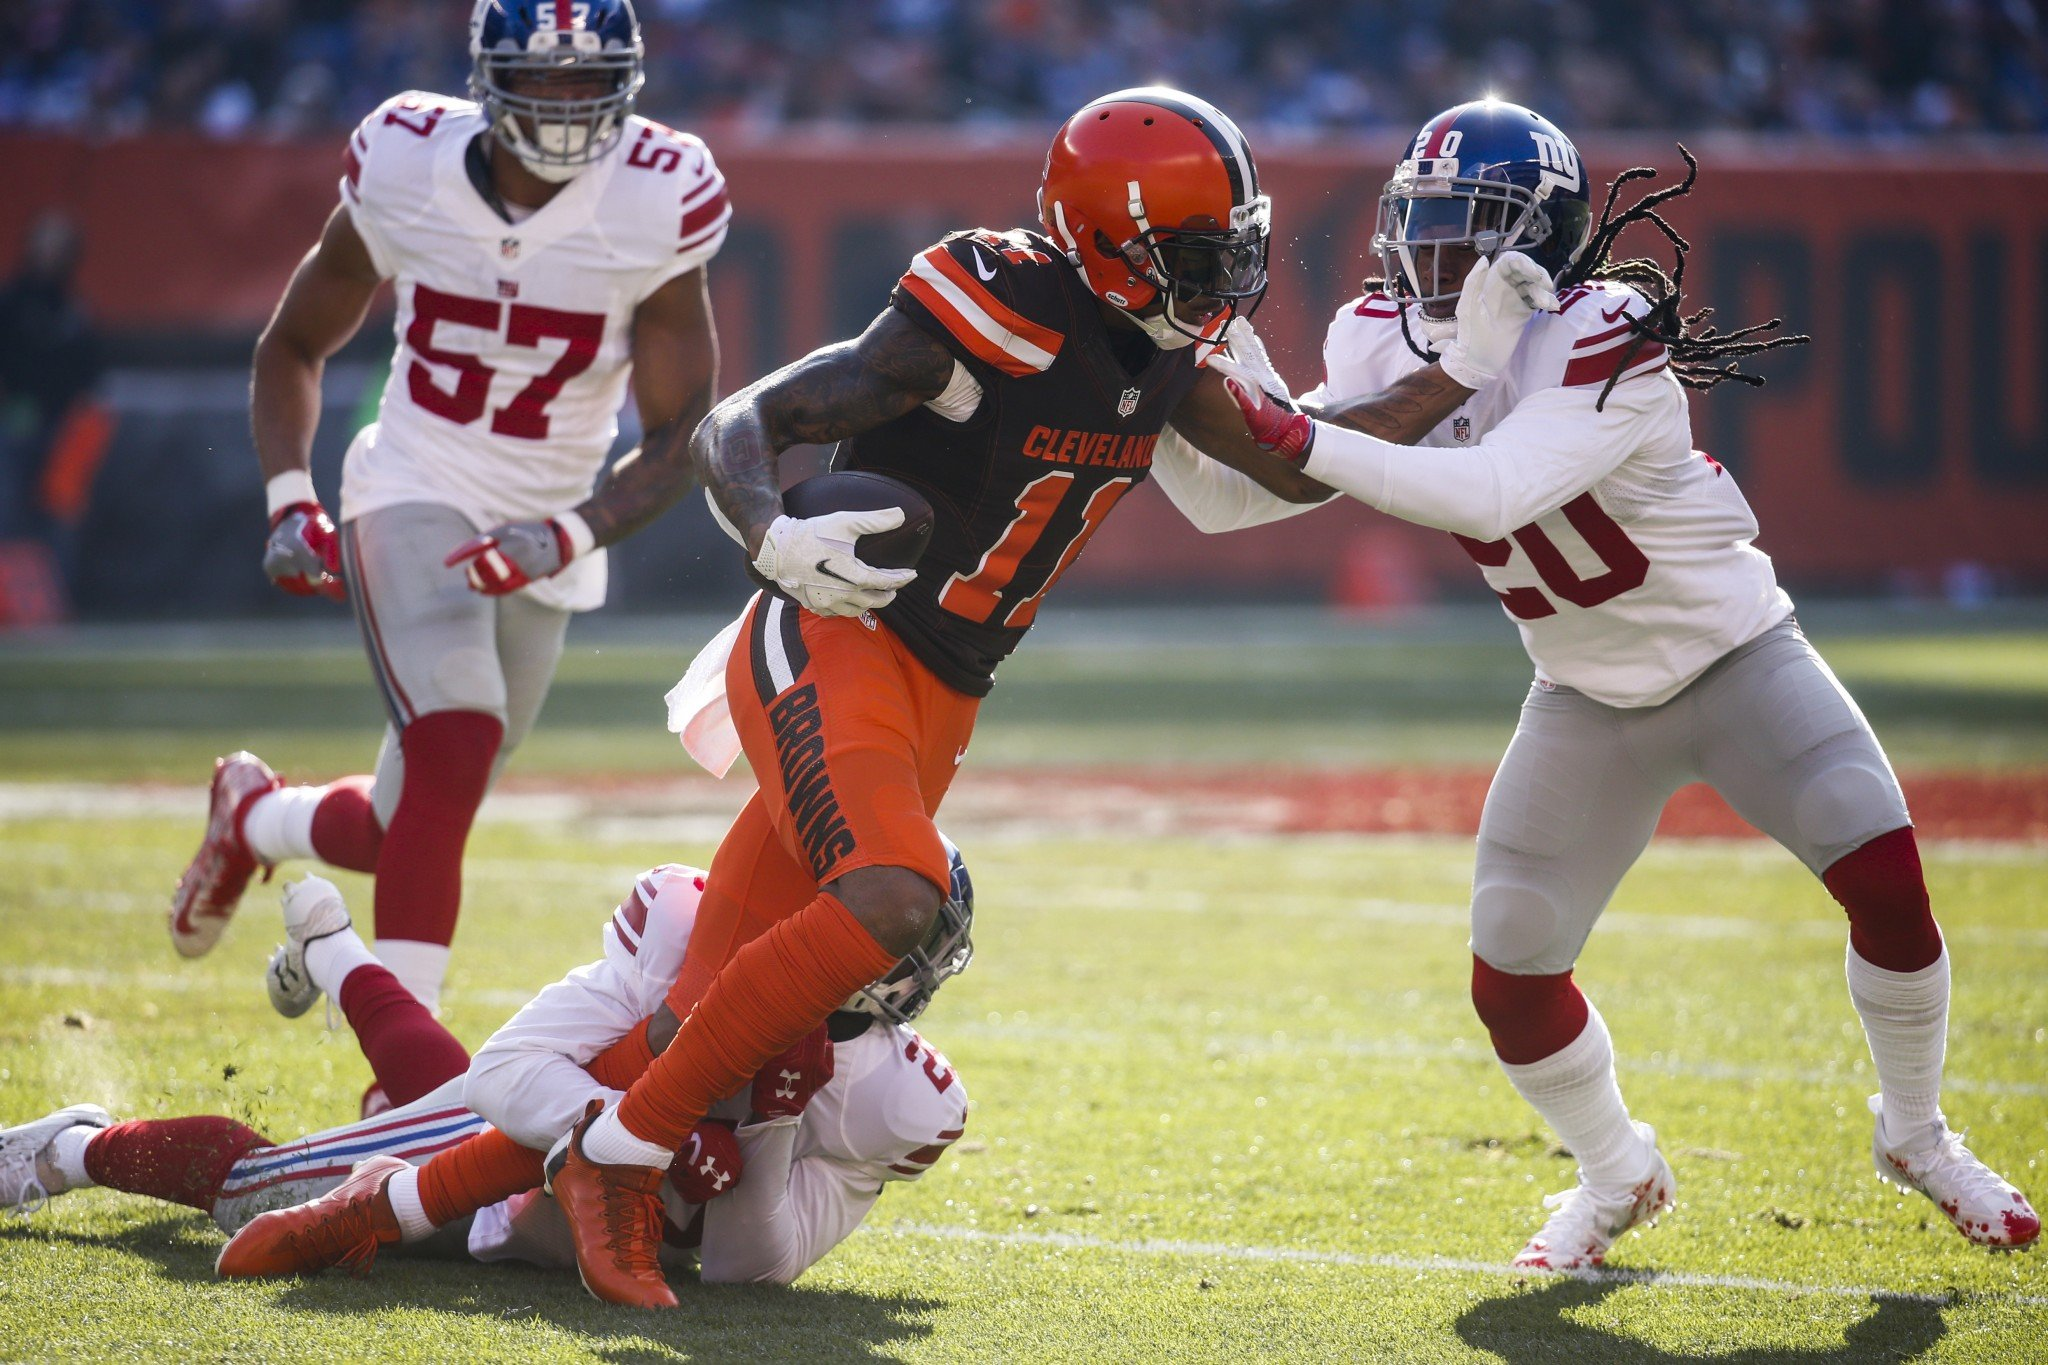 Fighting for yards: Cleveland's Terrelle Pryor tries to stiff-arm New York's Janoris Jenkins. (AP)